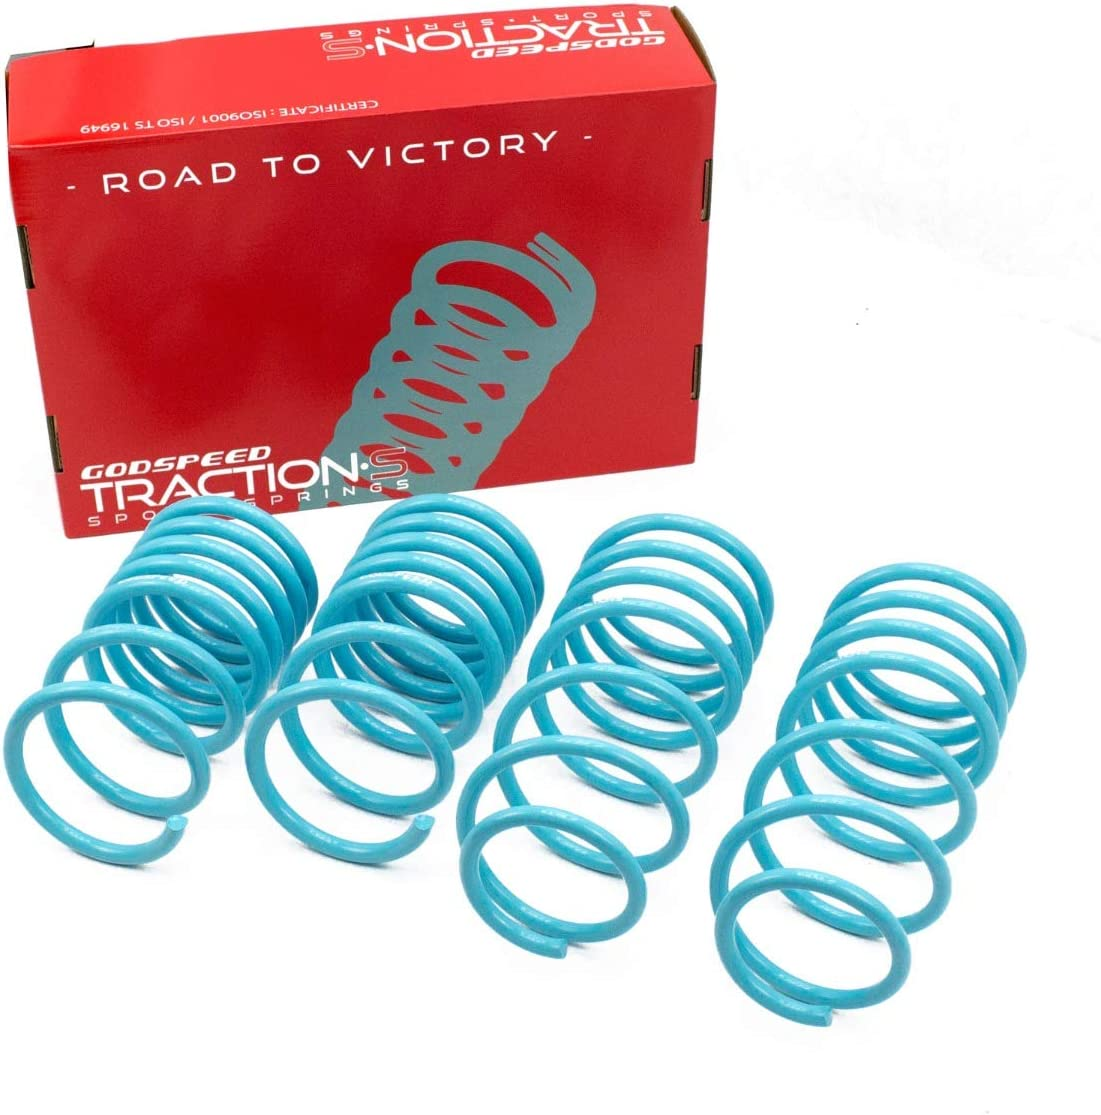 LS-TS-FD-0006-B Traction-S Performance Lowering Springs for ford Mustang Coupe 1994-98